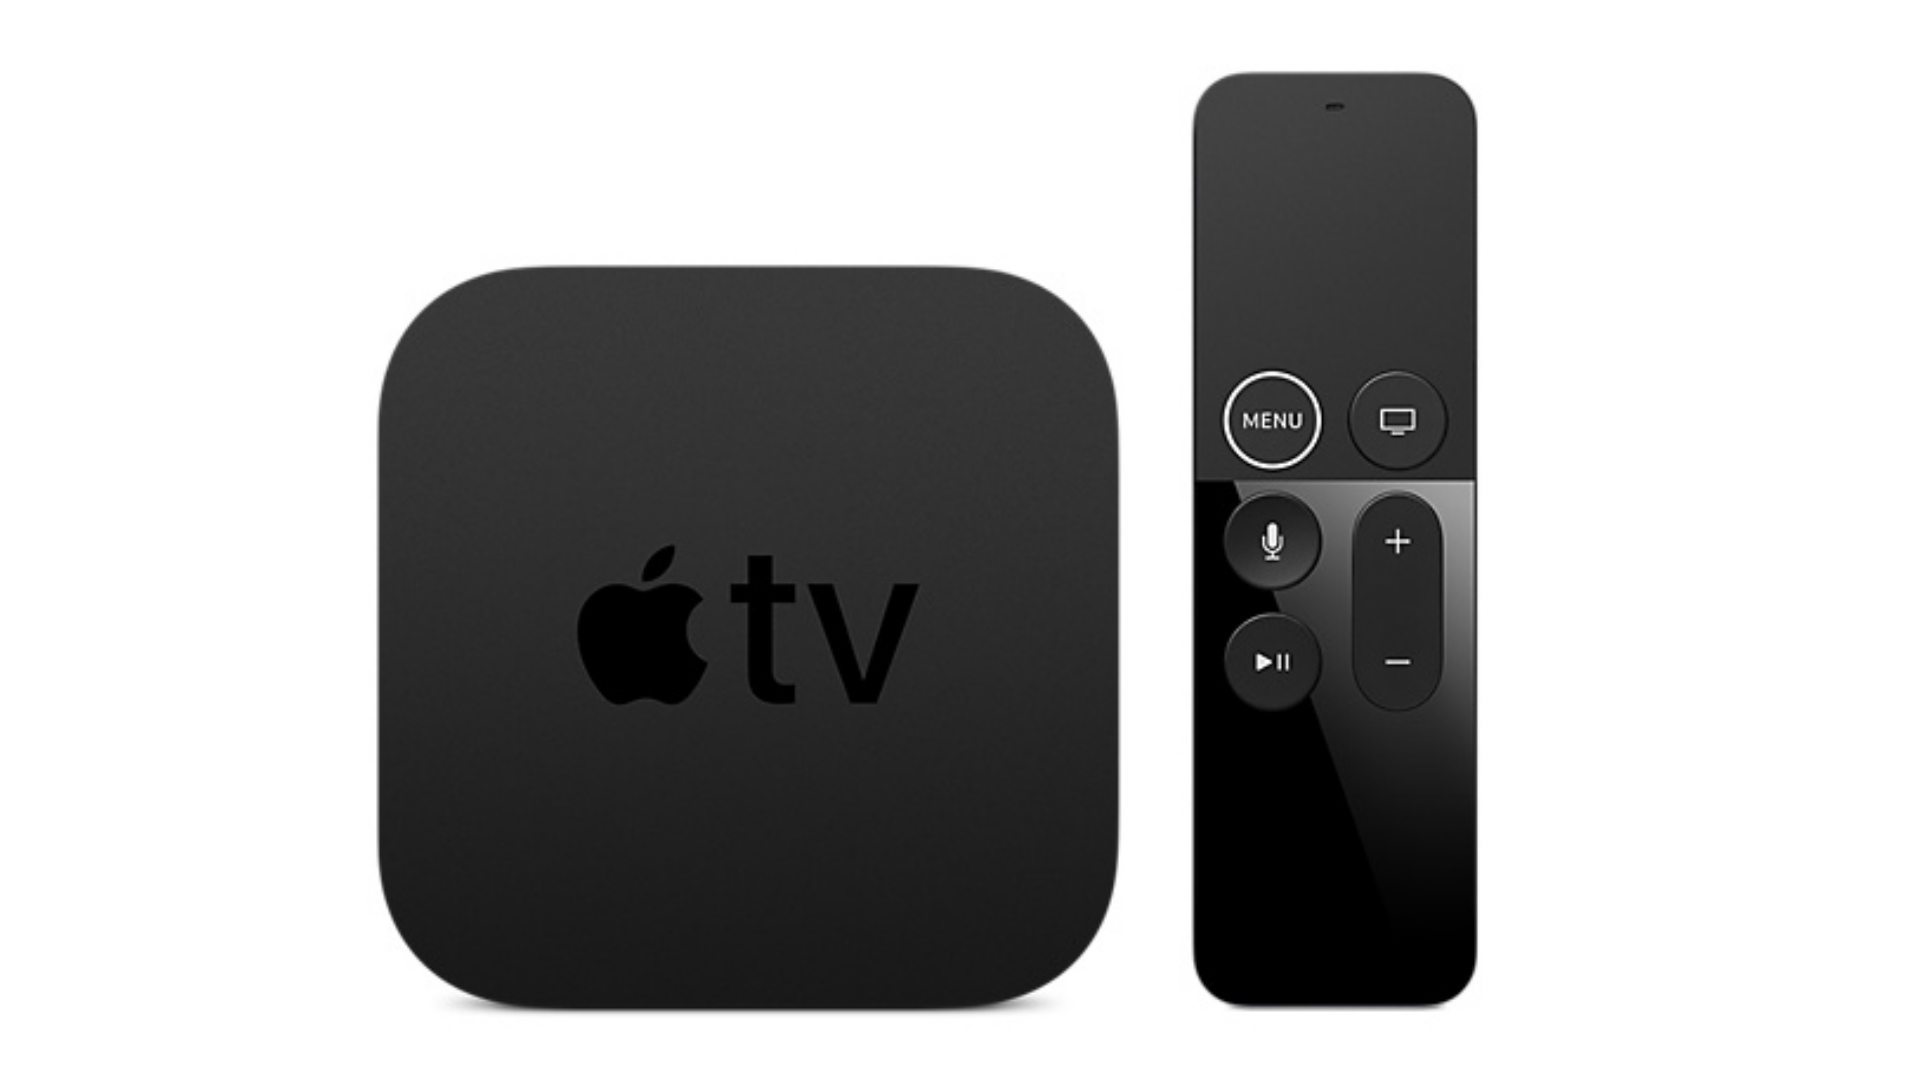 The best Apple TV deals in September 2017